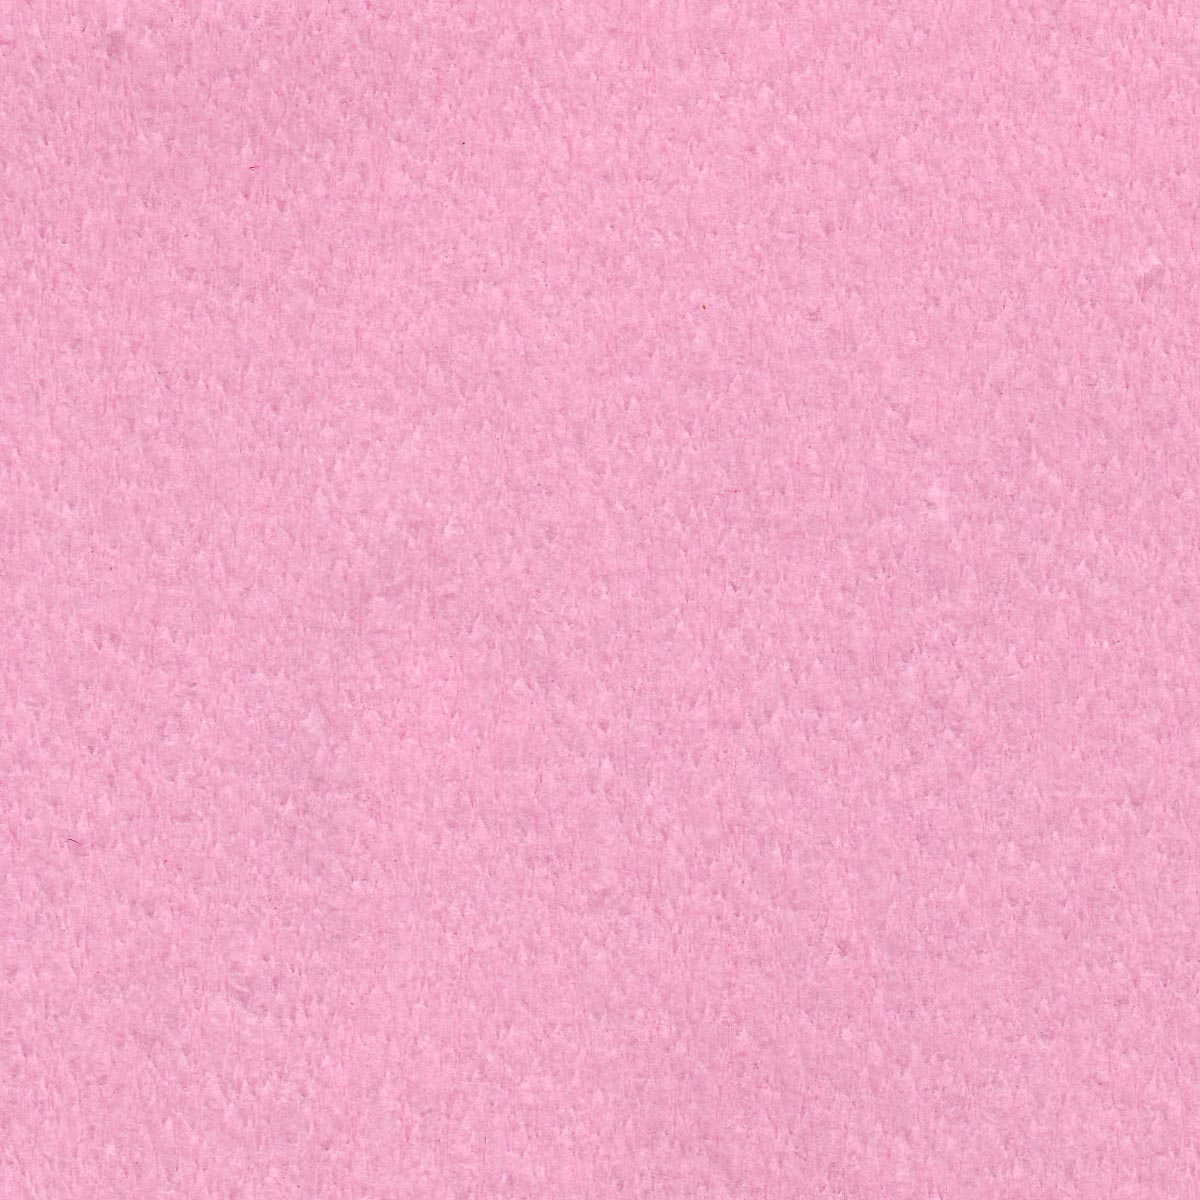 Baby Pink Crepe Paper ...